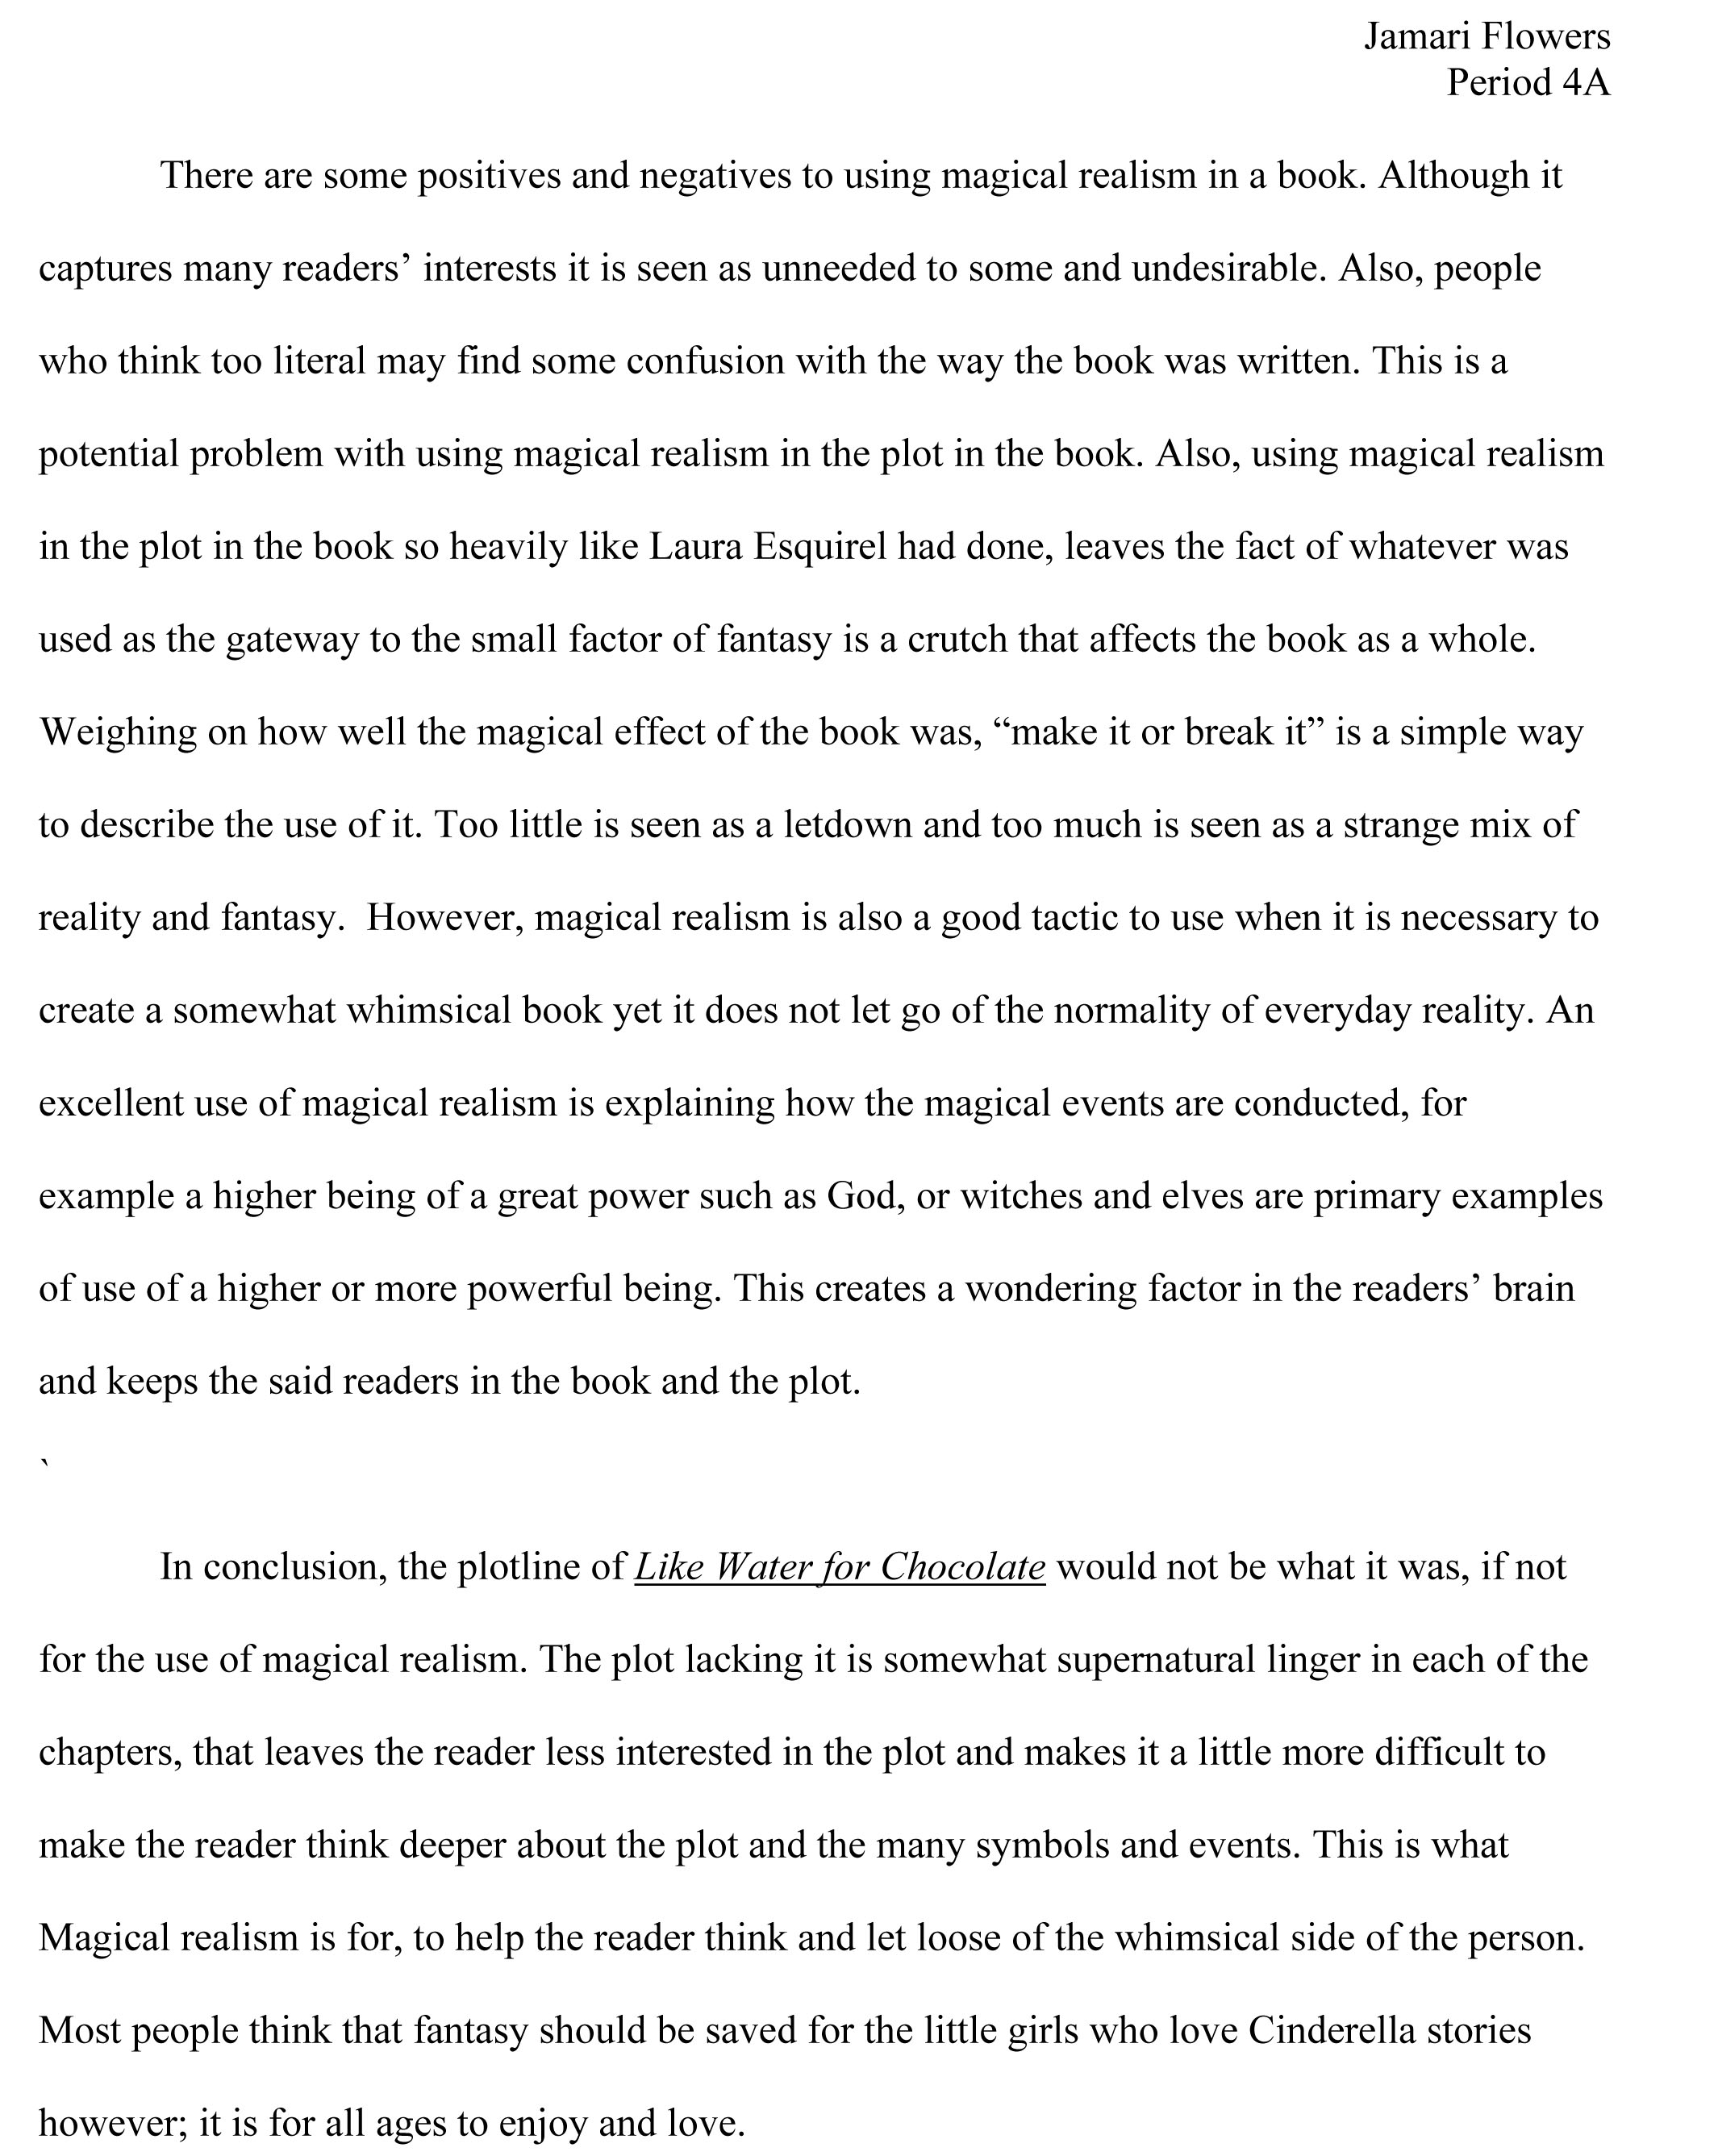 realism essay essay to what extent does realism differ from magical realism essay flowers page jpgmy essays my green life jamari flowers^ ^ magical realism